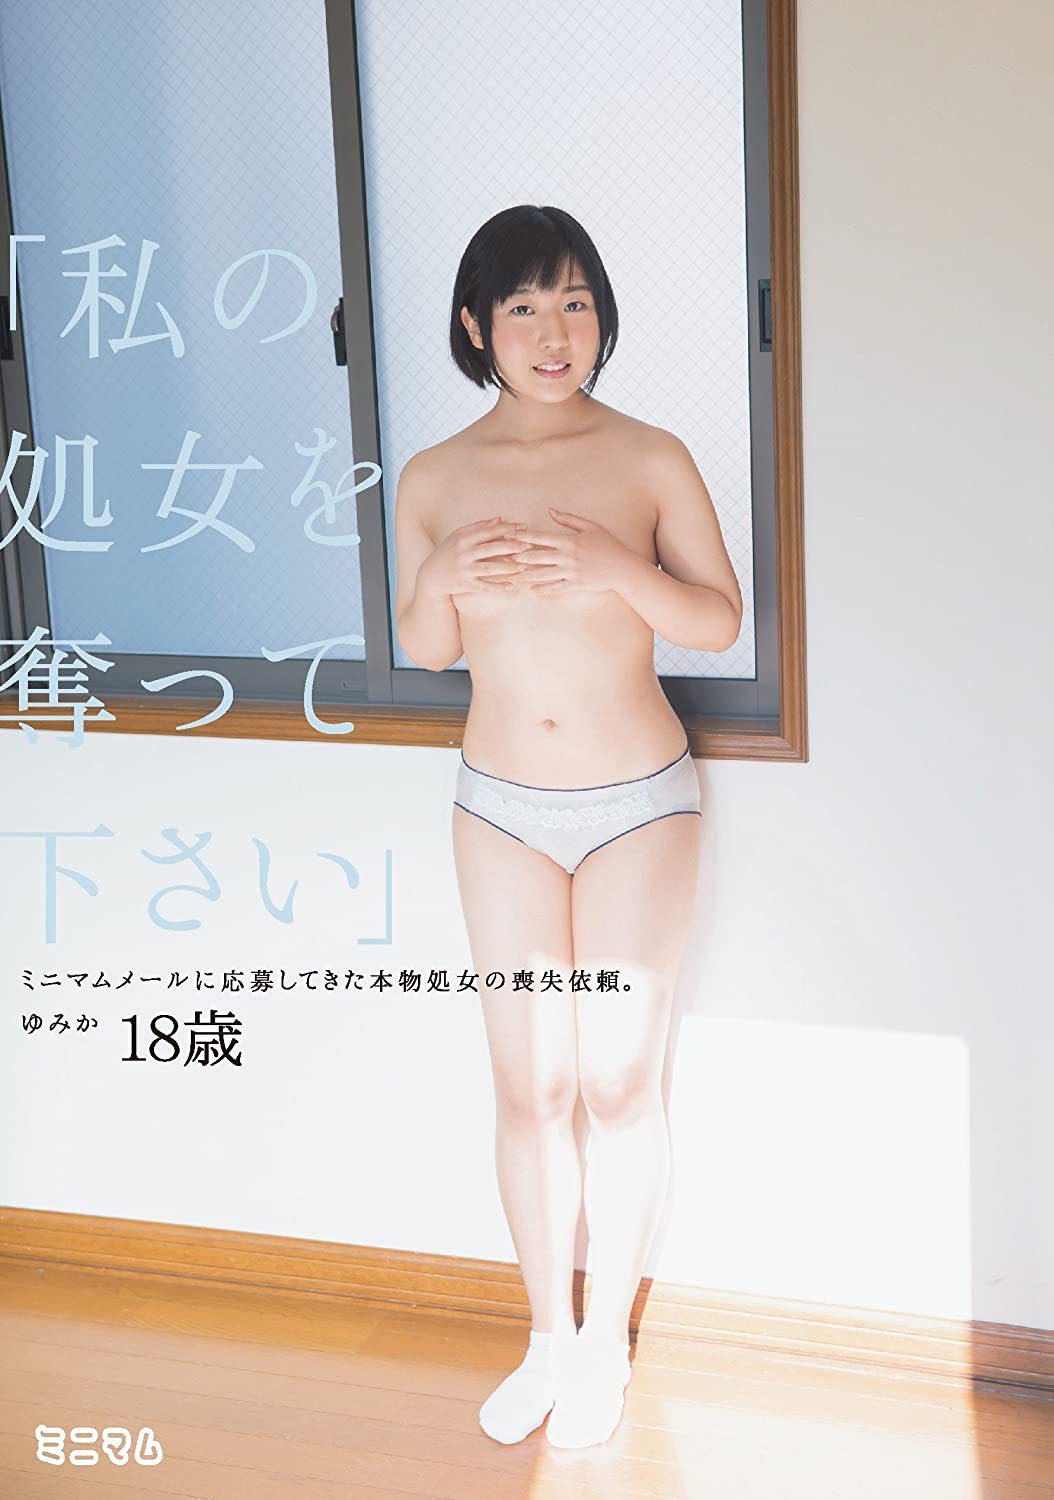 Ami matsuda with hot bum has hairy cunt 8